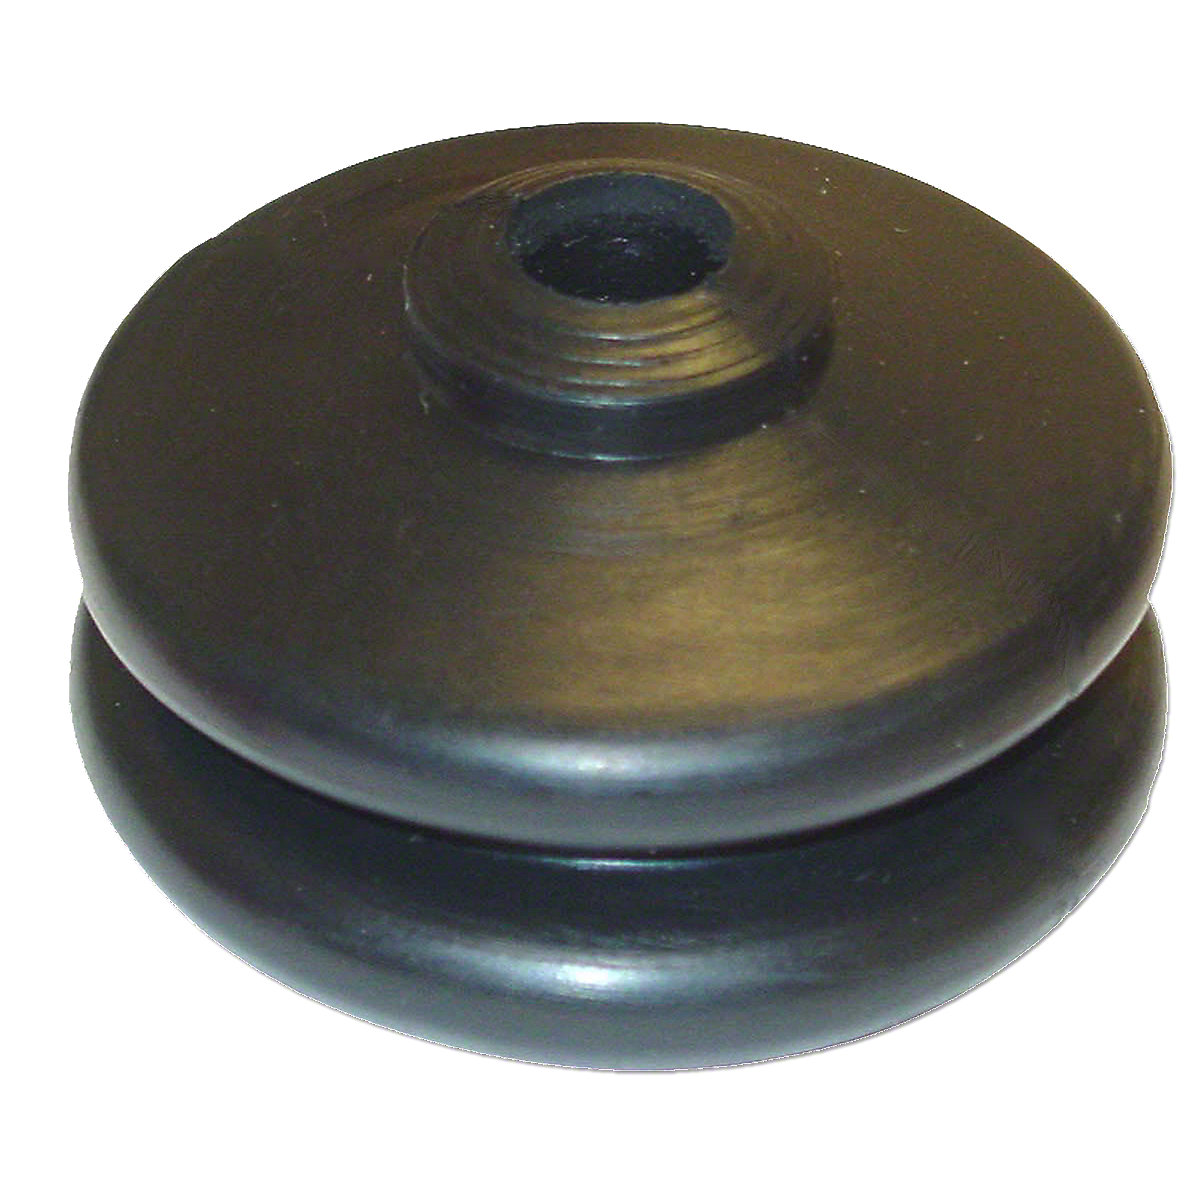 Gear Shift Boot For Allis Chalmers: B, C, CA, D10, D12, D14, D15, ED40, I40, I400, I60, IB, RC, WC, WD, WD45, WF.